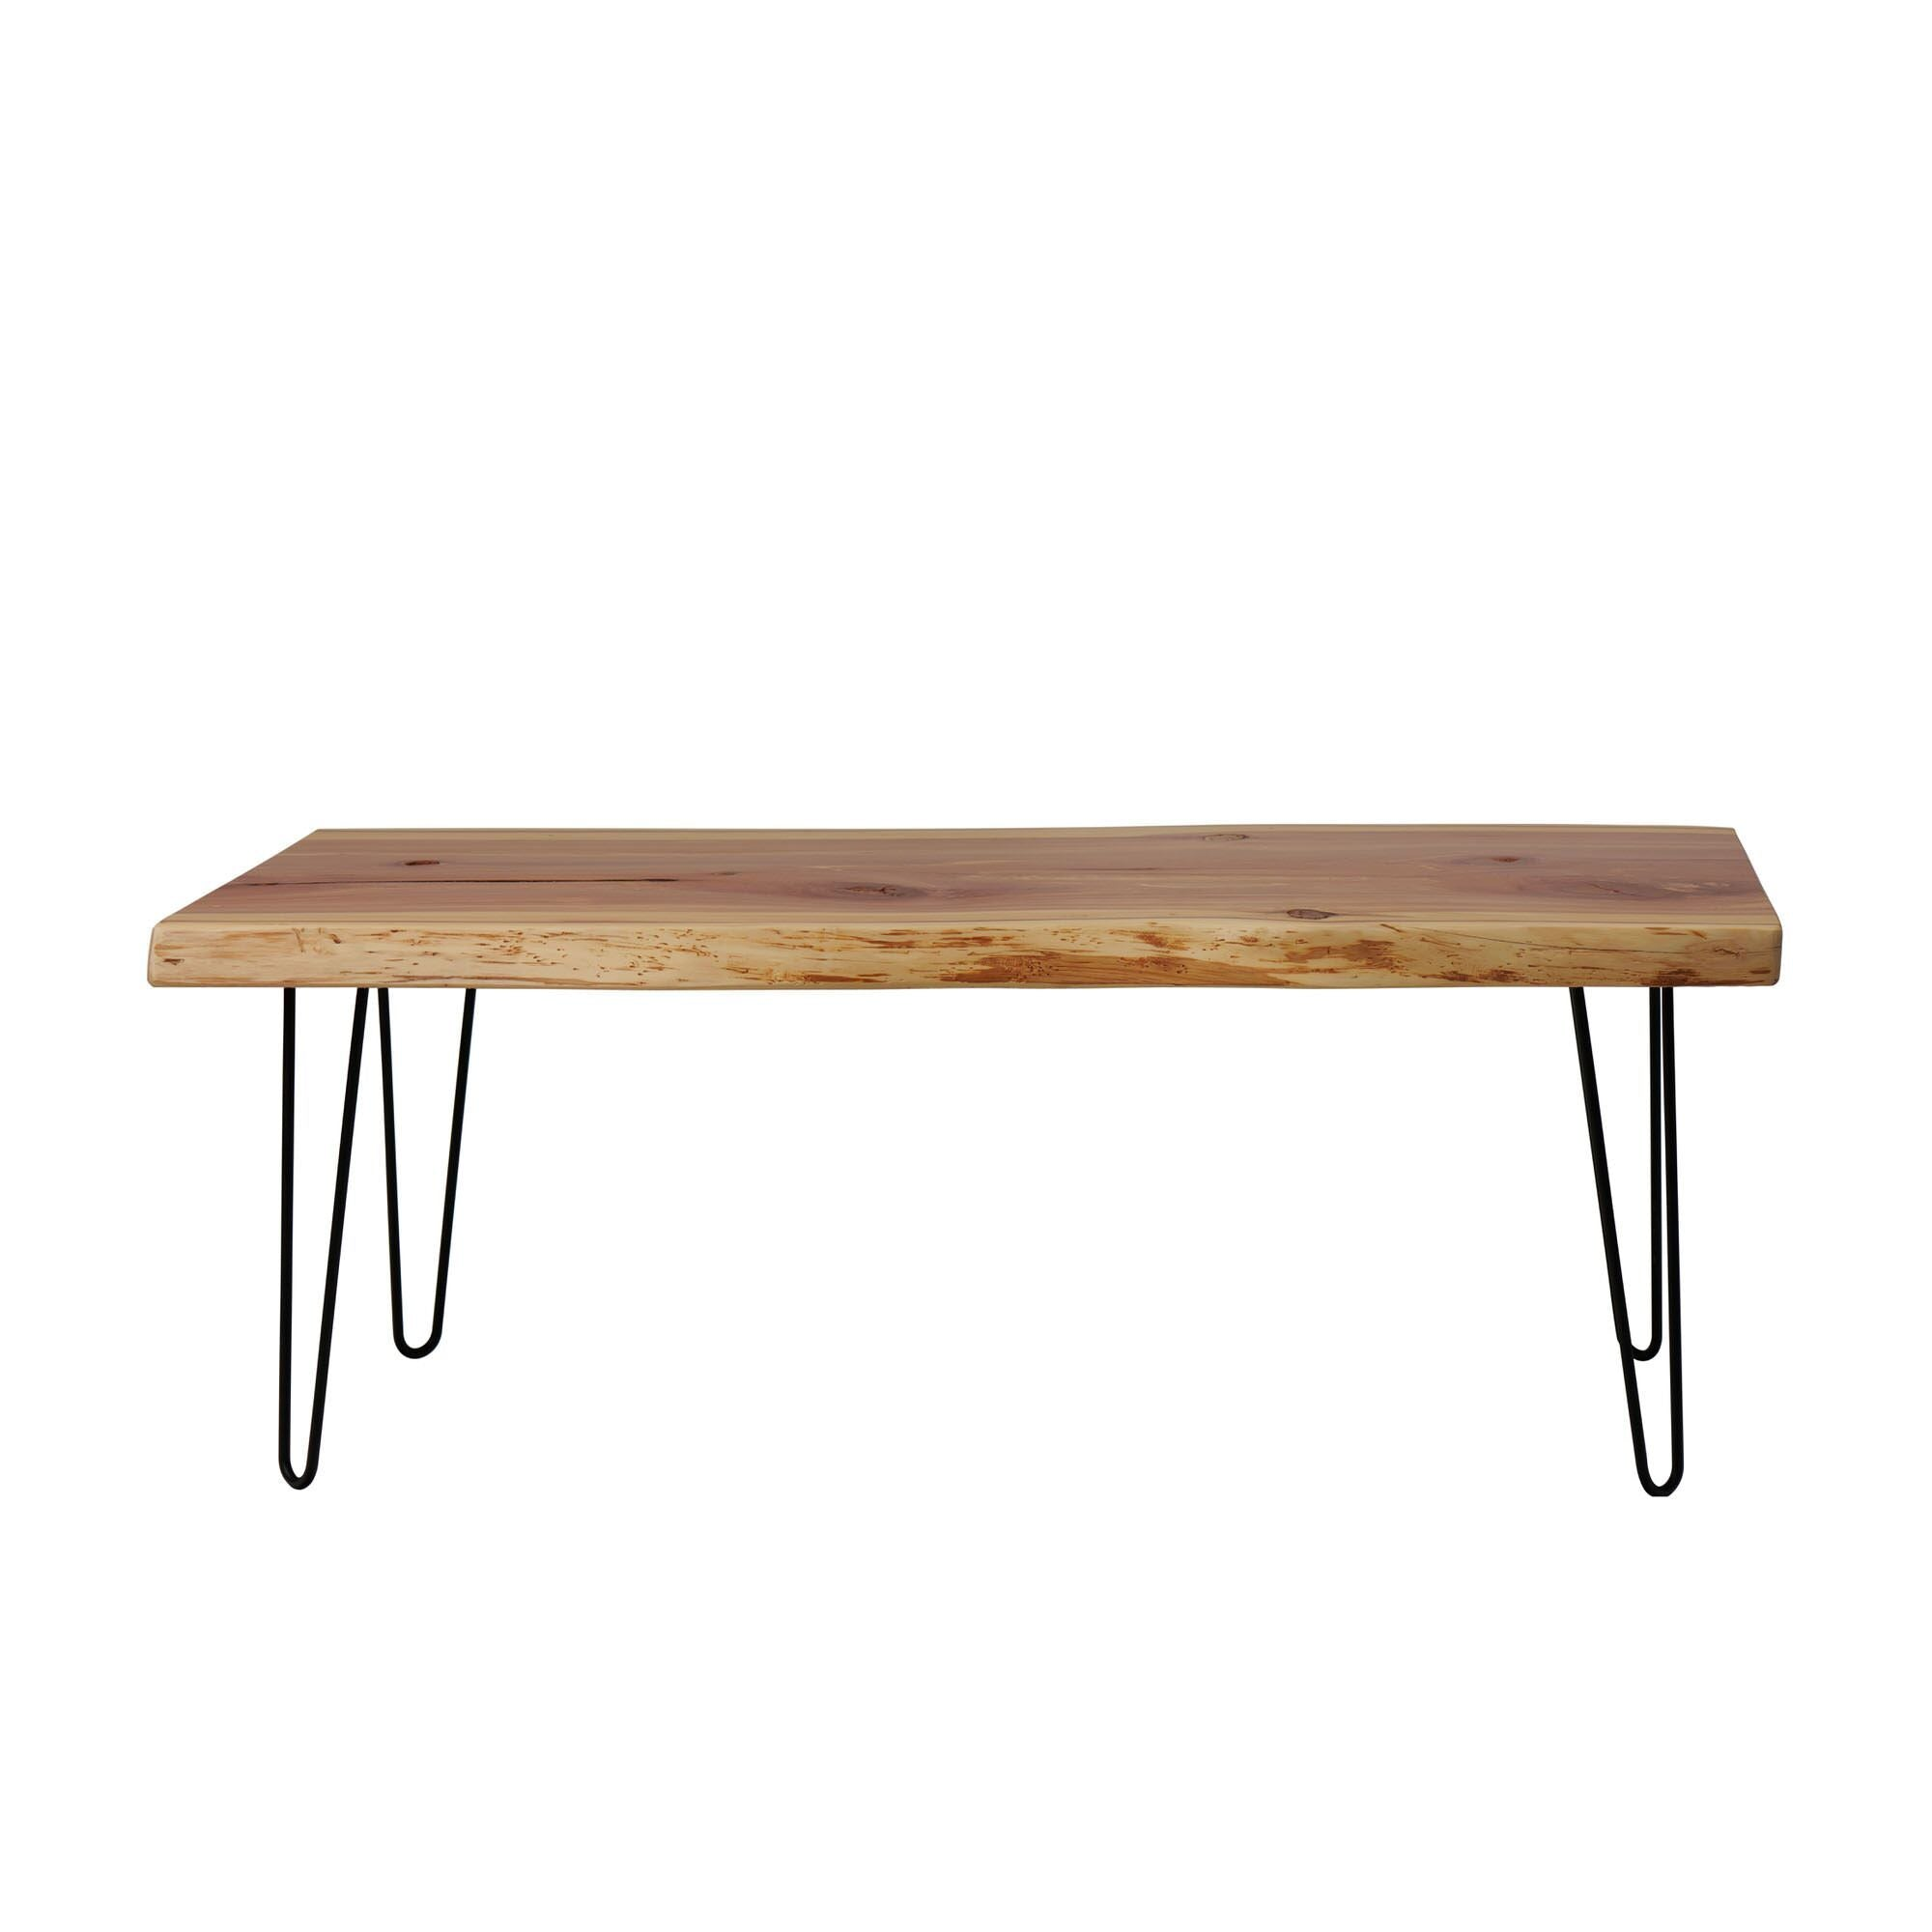 Live Edge Hairpin Slab Coffee Table made by Knaughty Log Co